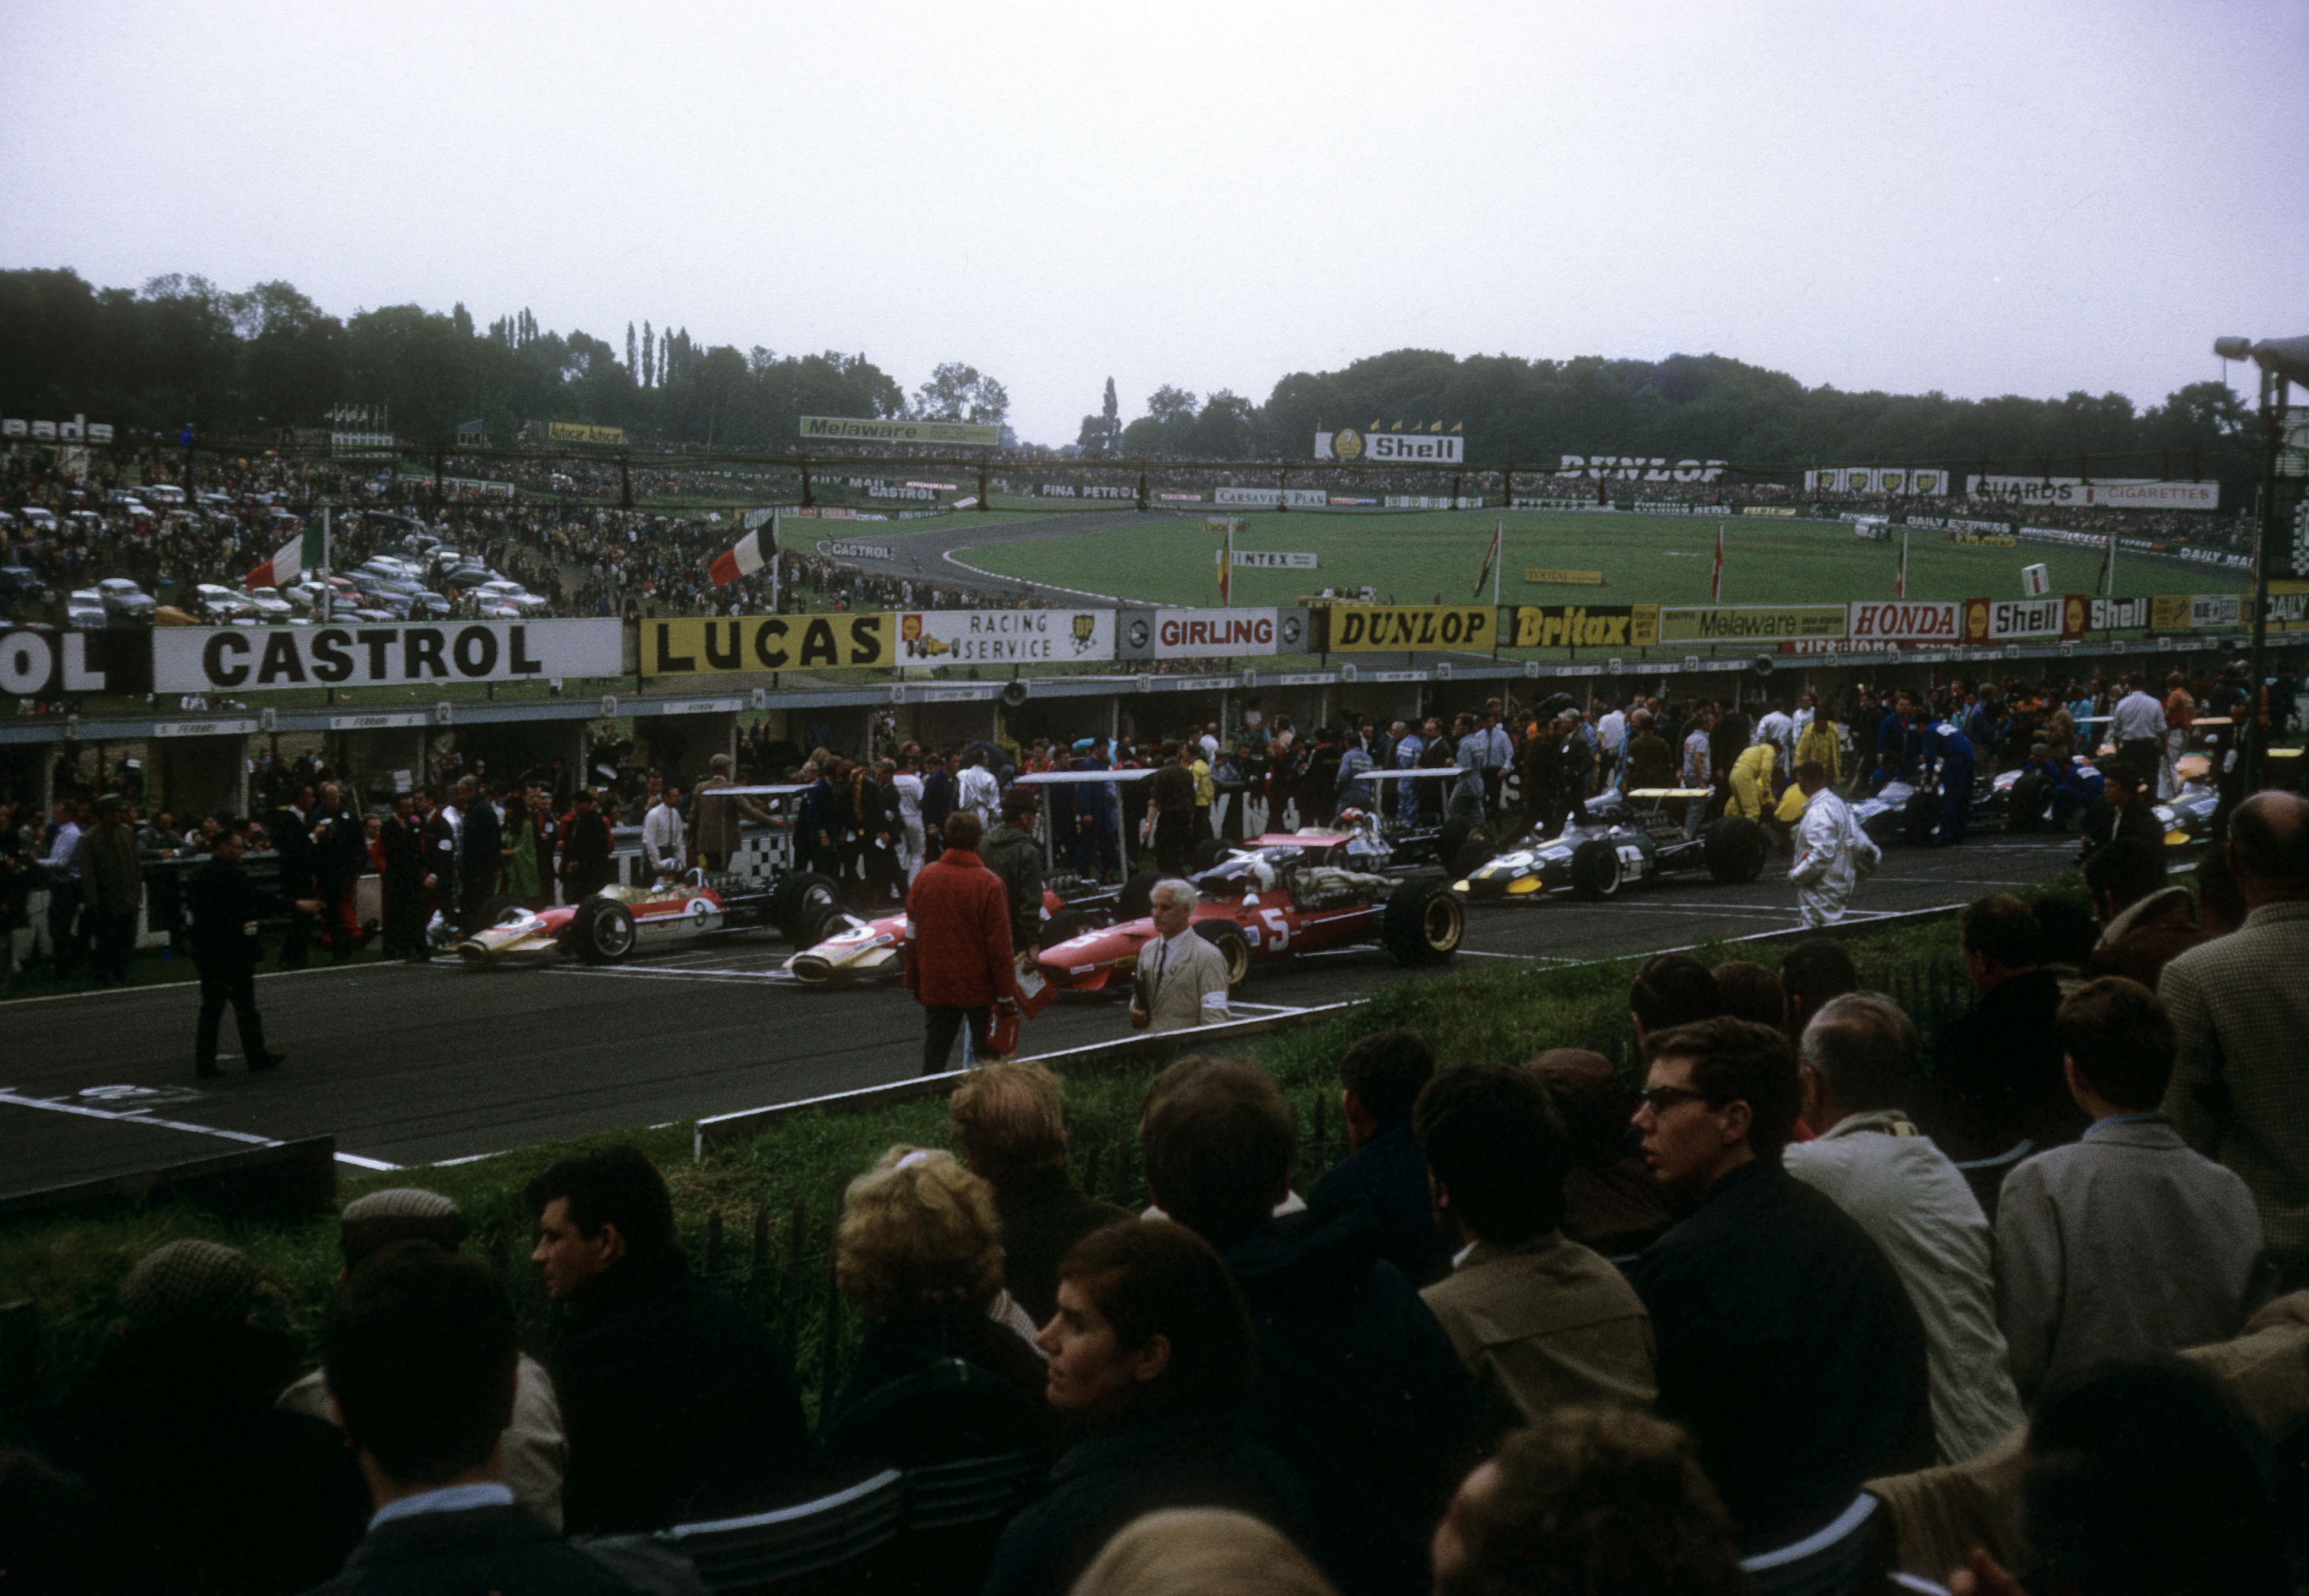 For Brian Mackey, it all started here.  This exact spot.  The 1968  British Grand Prix at Brands Hatch.  Photo by a mesmerized Brian Mackey.